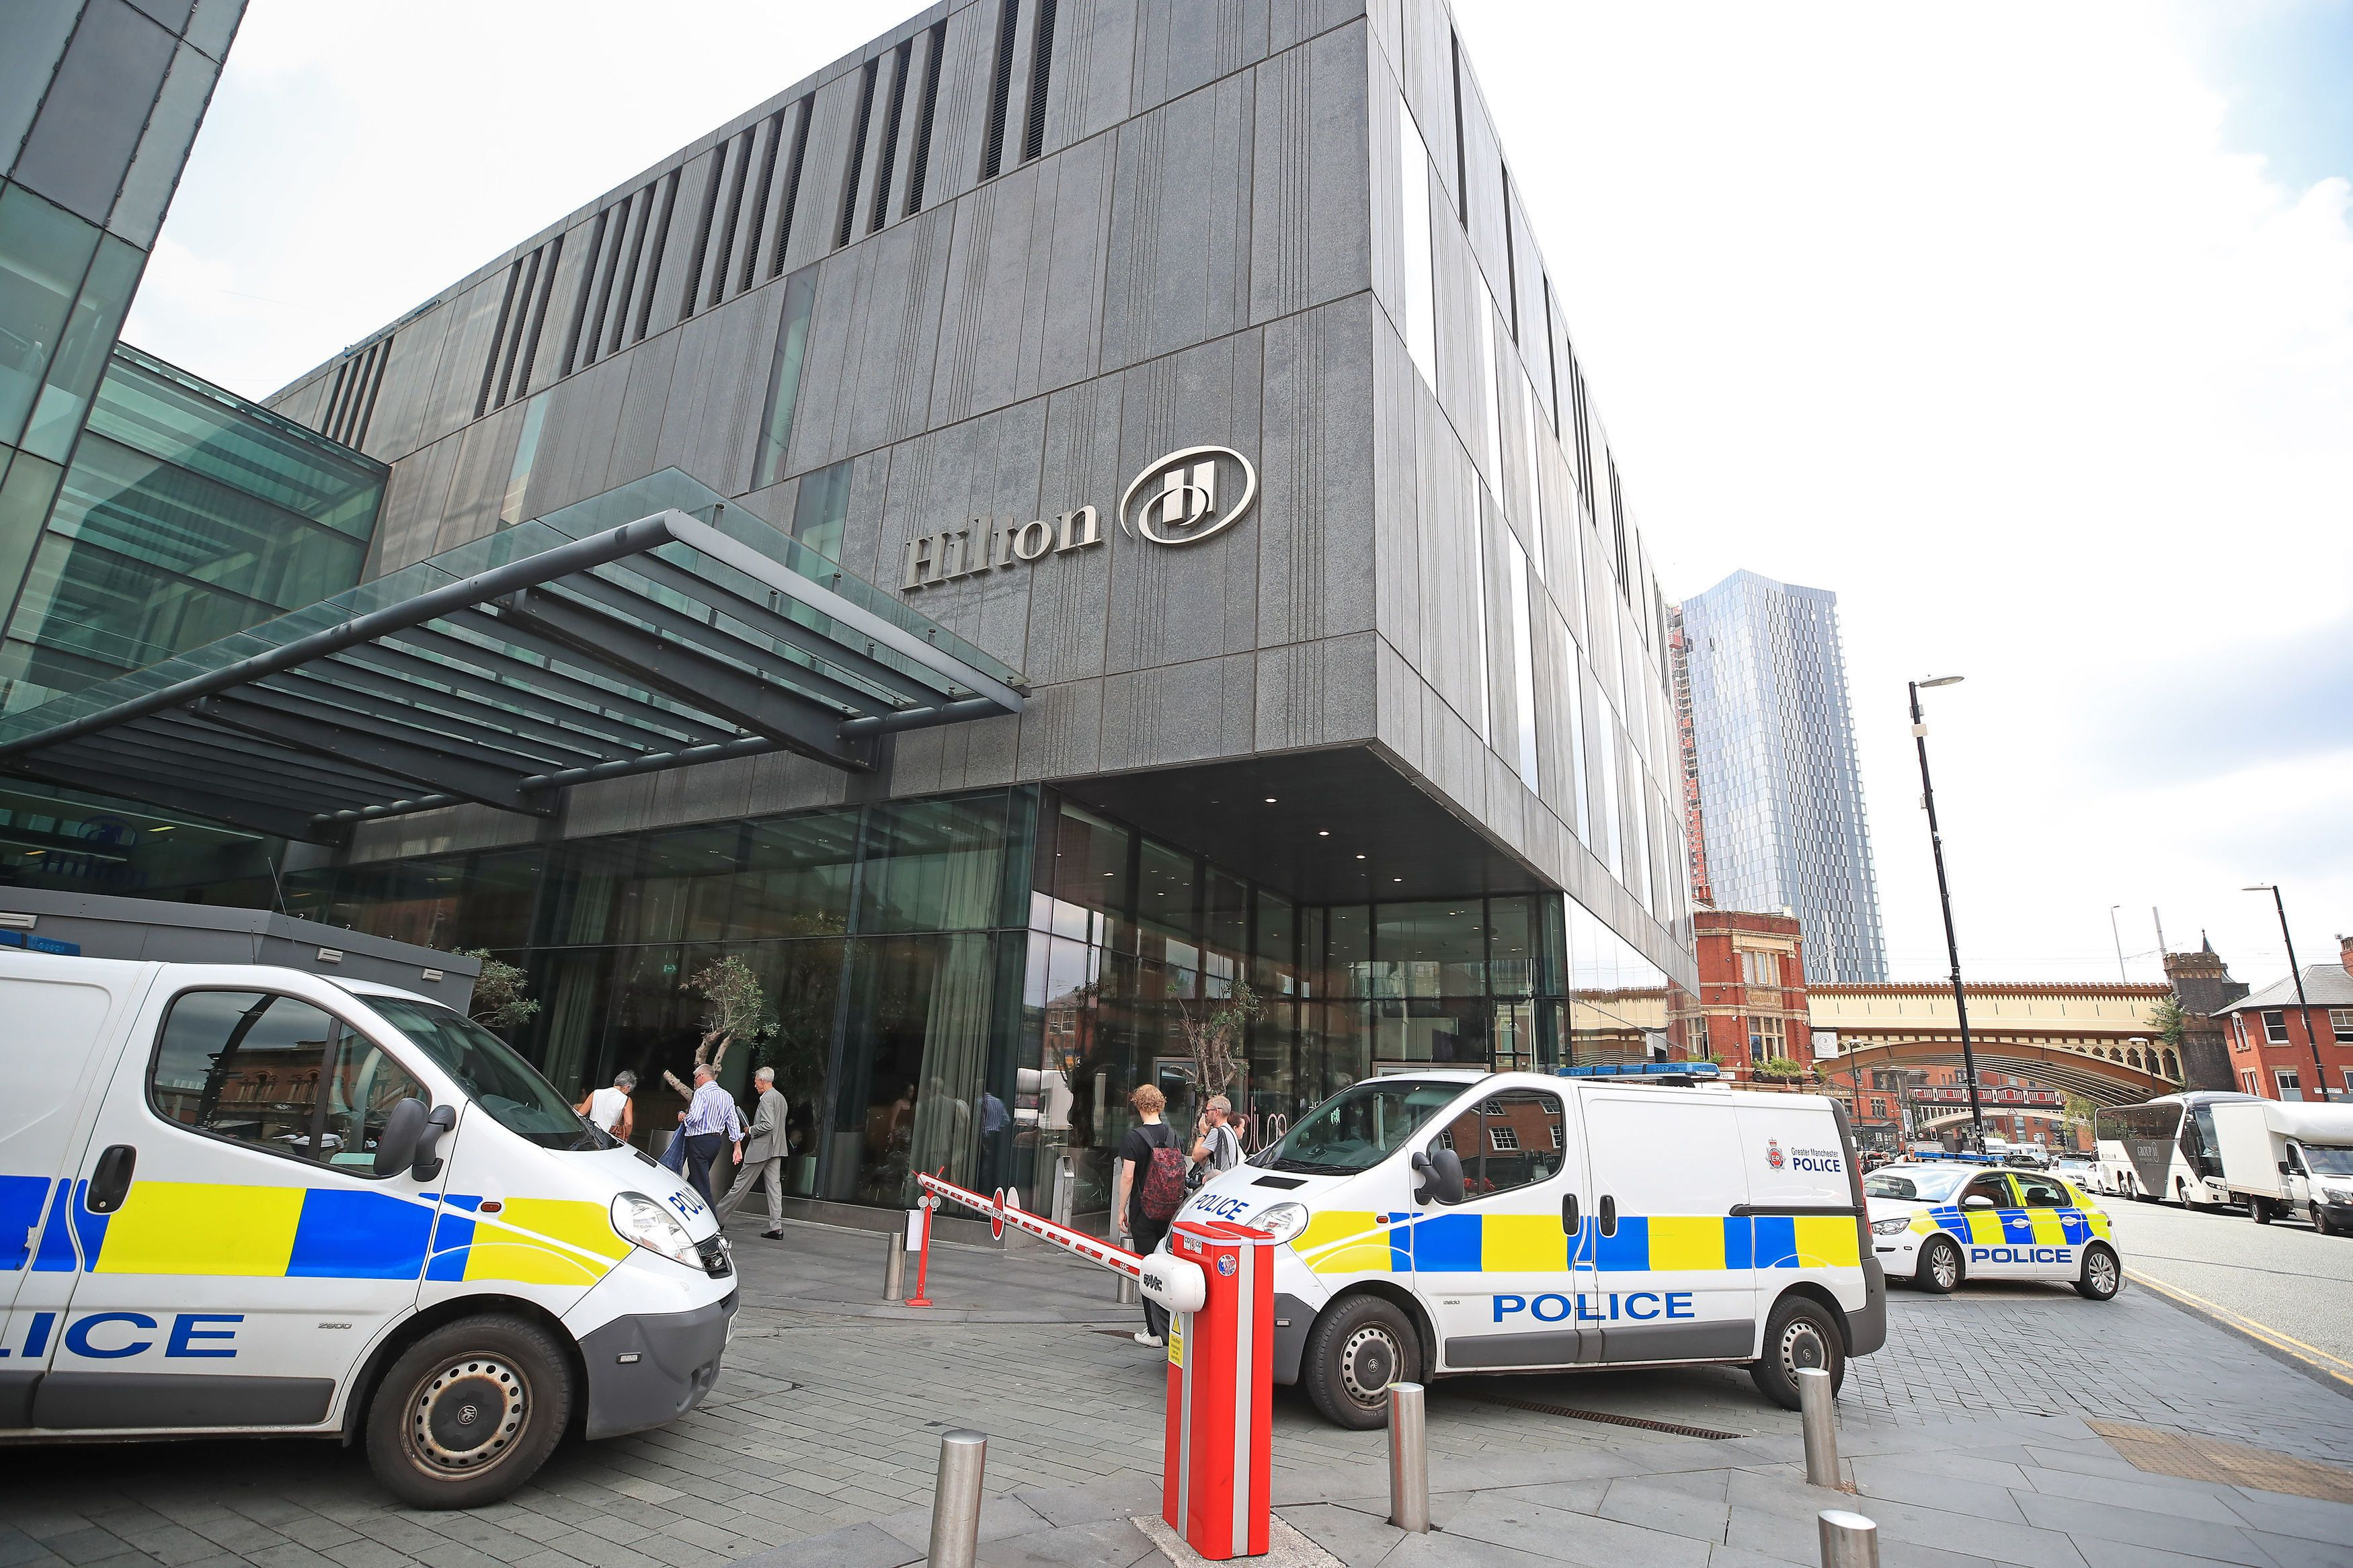 Police at the scene at the Hilton Hotel, Deansgate, Manchester where a woman with serious injuries to...